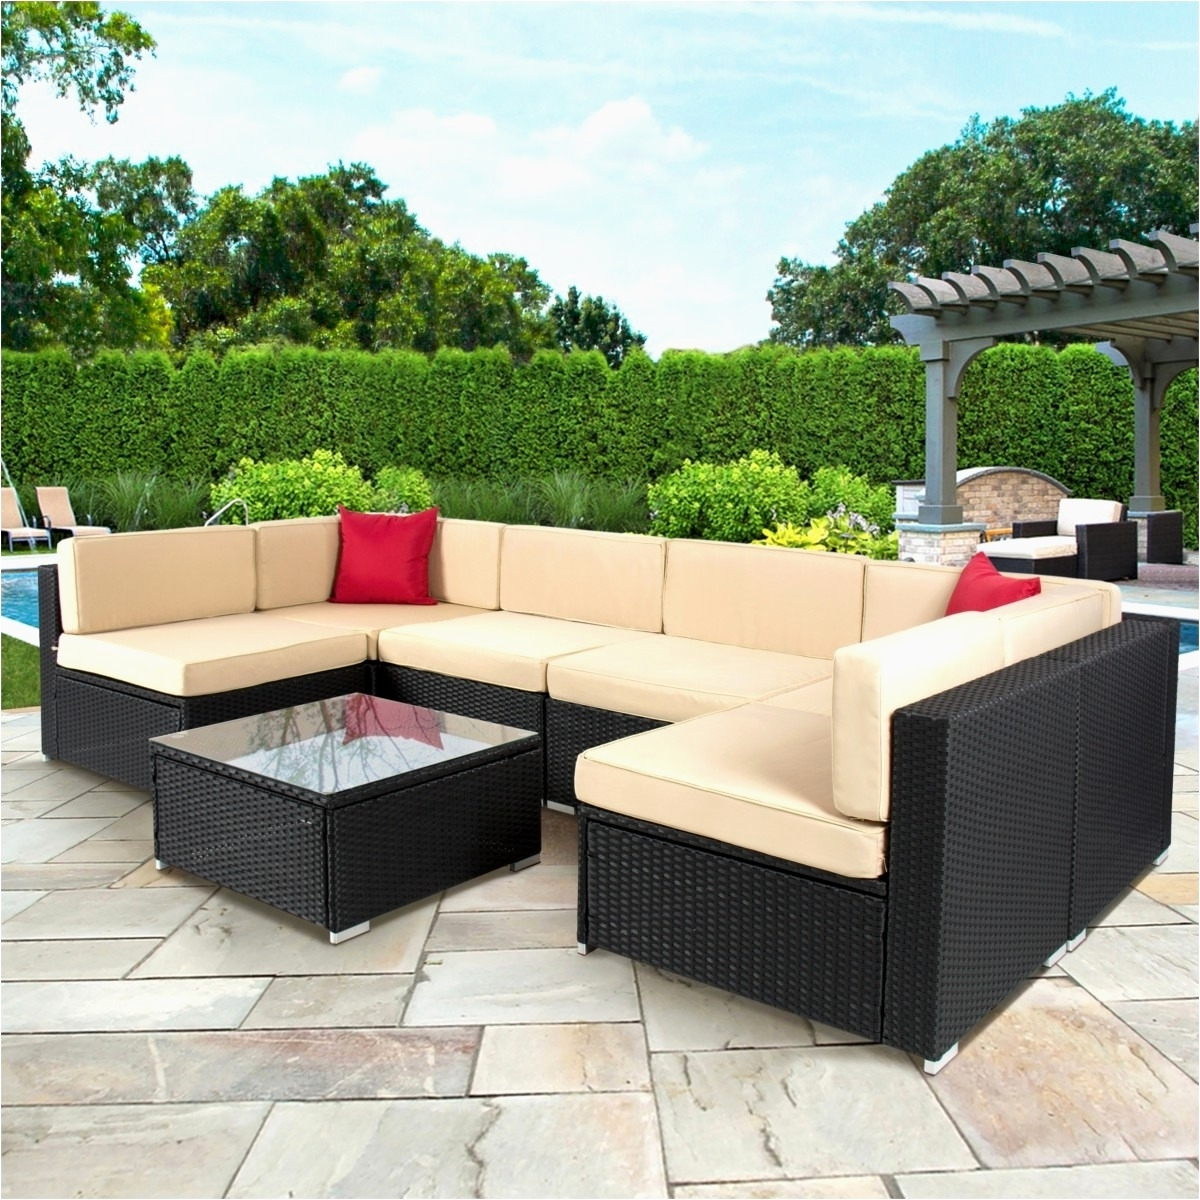 Patio Conversation Sets At Sam's Club Intended For Well Liked Sams Outdoor Furniture Photo Patio Dining Sets Sams Club Patio (View 14 of 15)